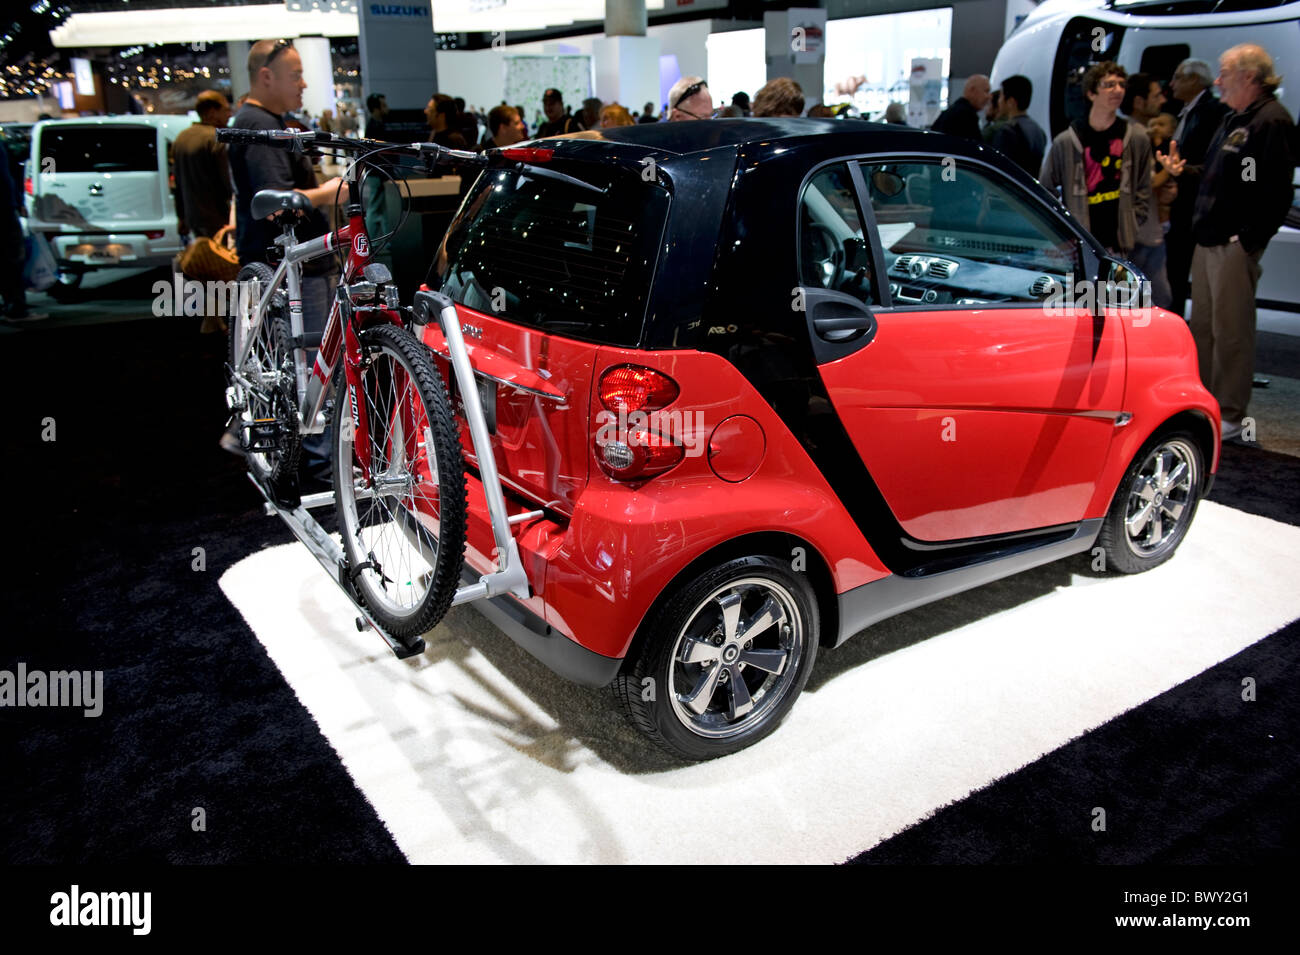 A Smart Car With A Bike Rack At The 2010 La Auto Show In The Los